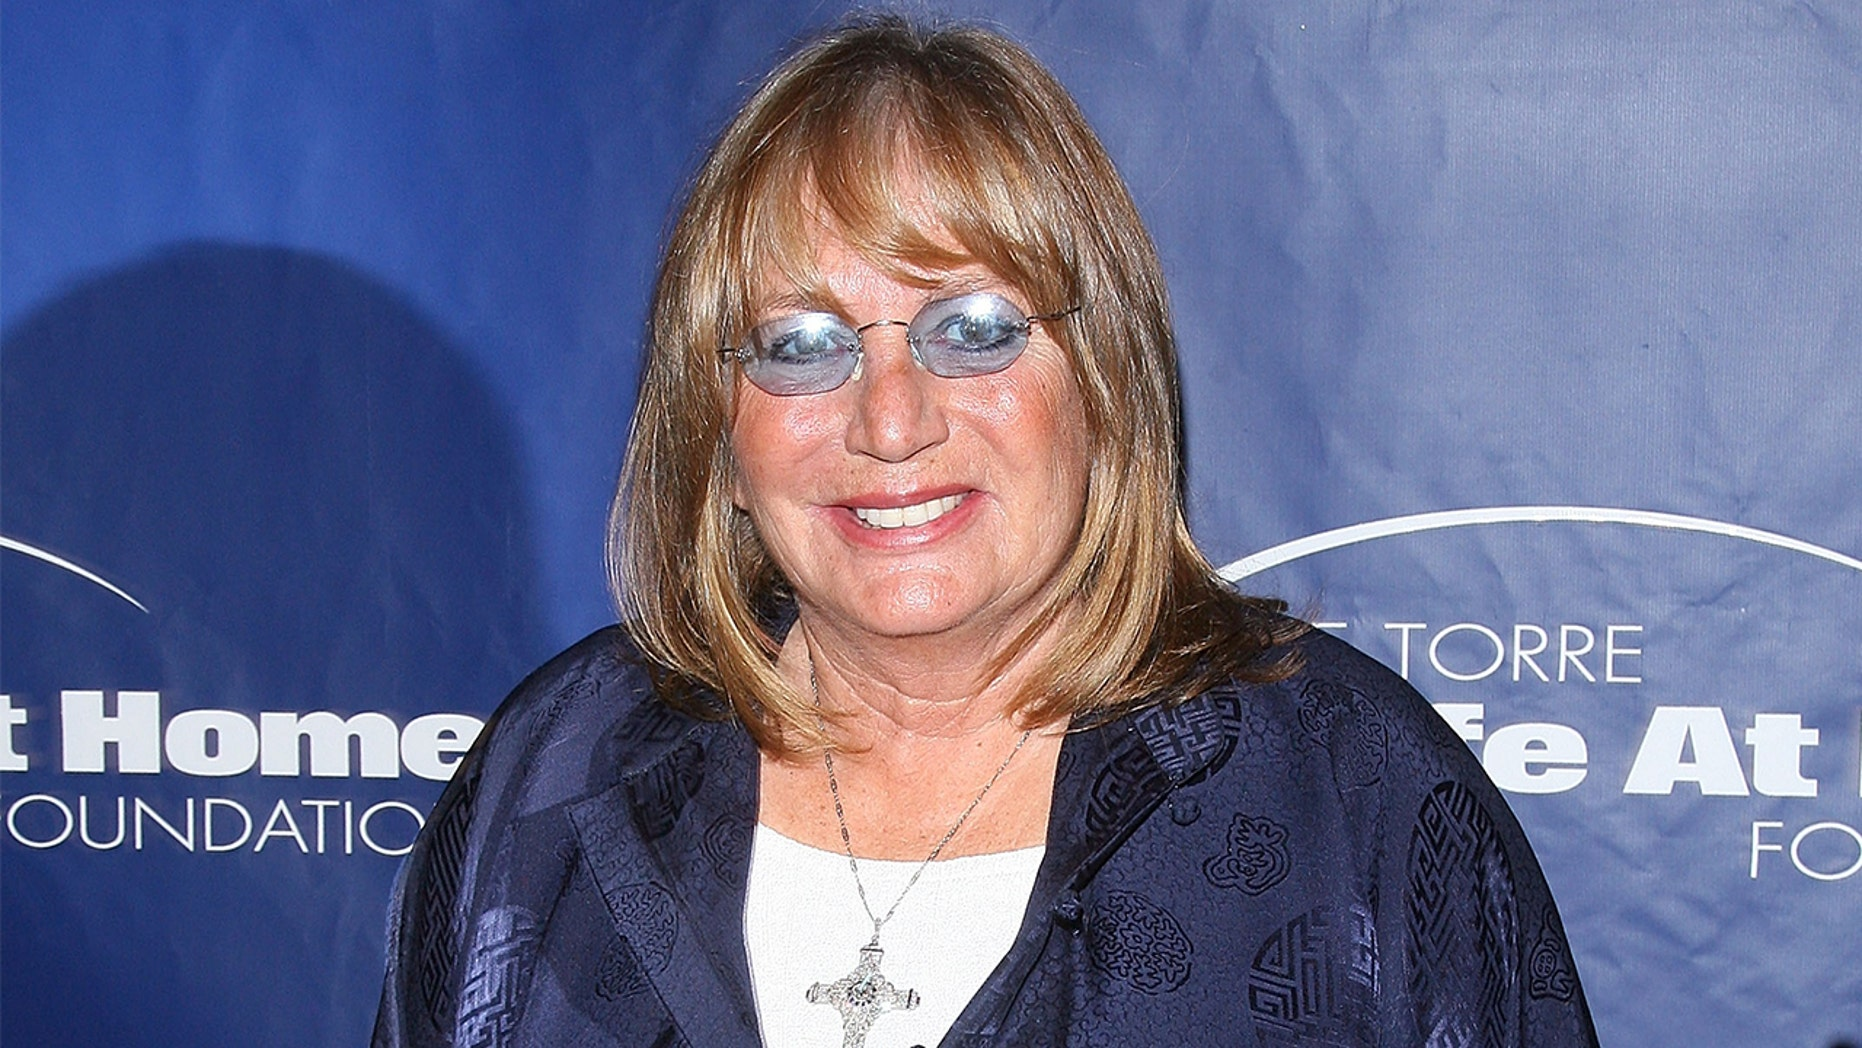 Penny Marshall, Star of Laverne & Shirley, Dead at Age 75